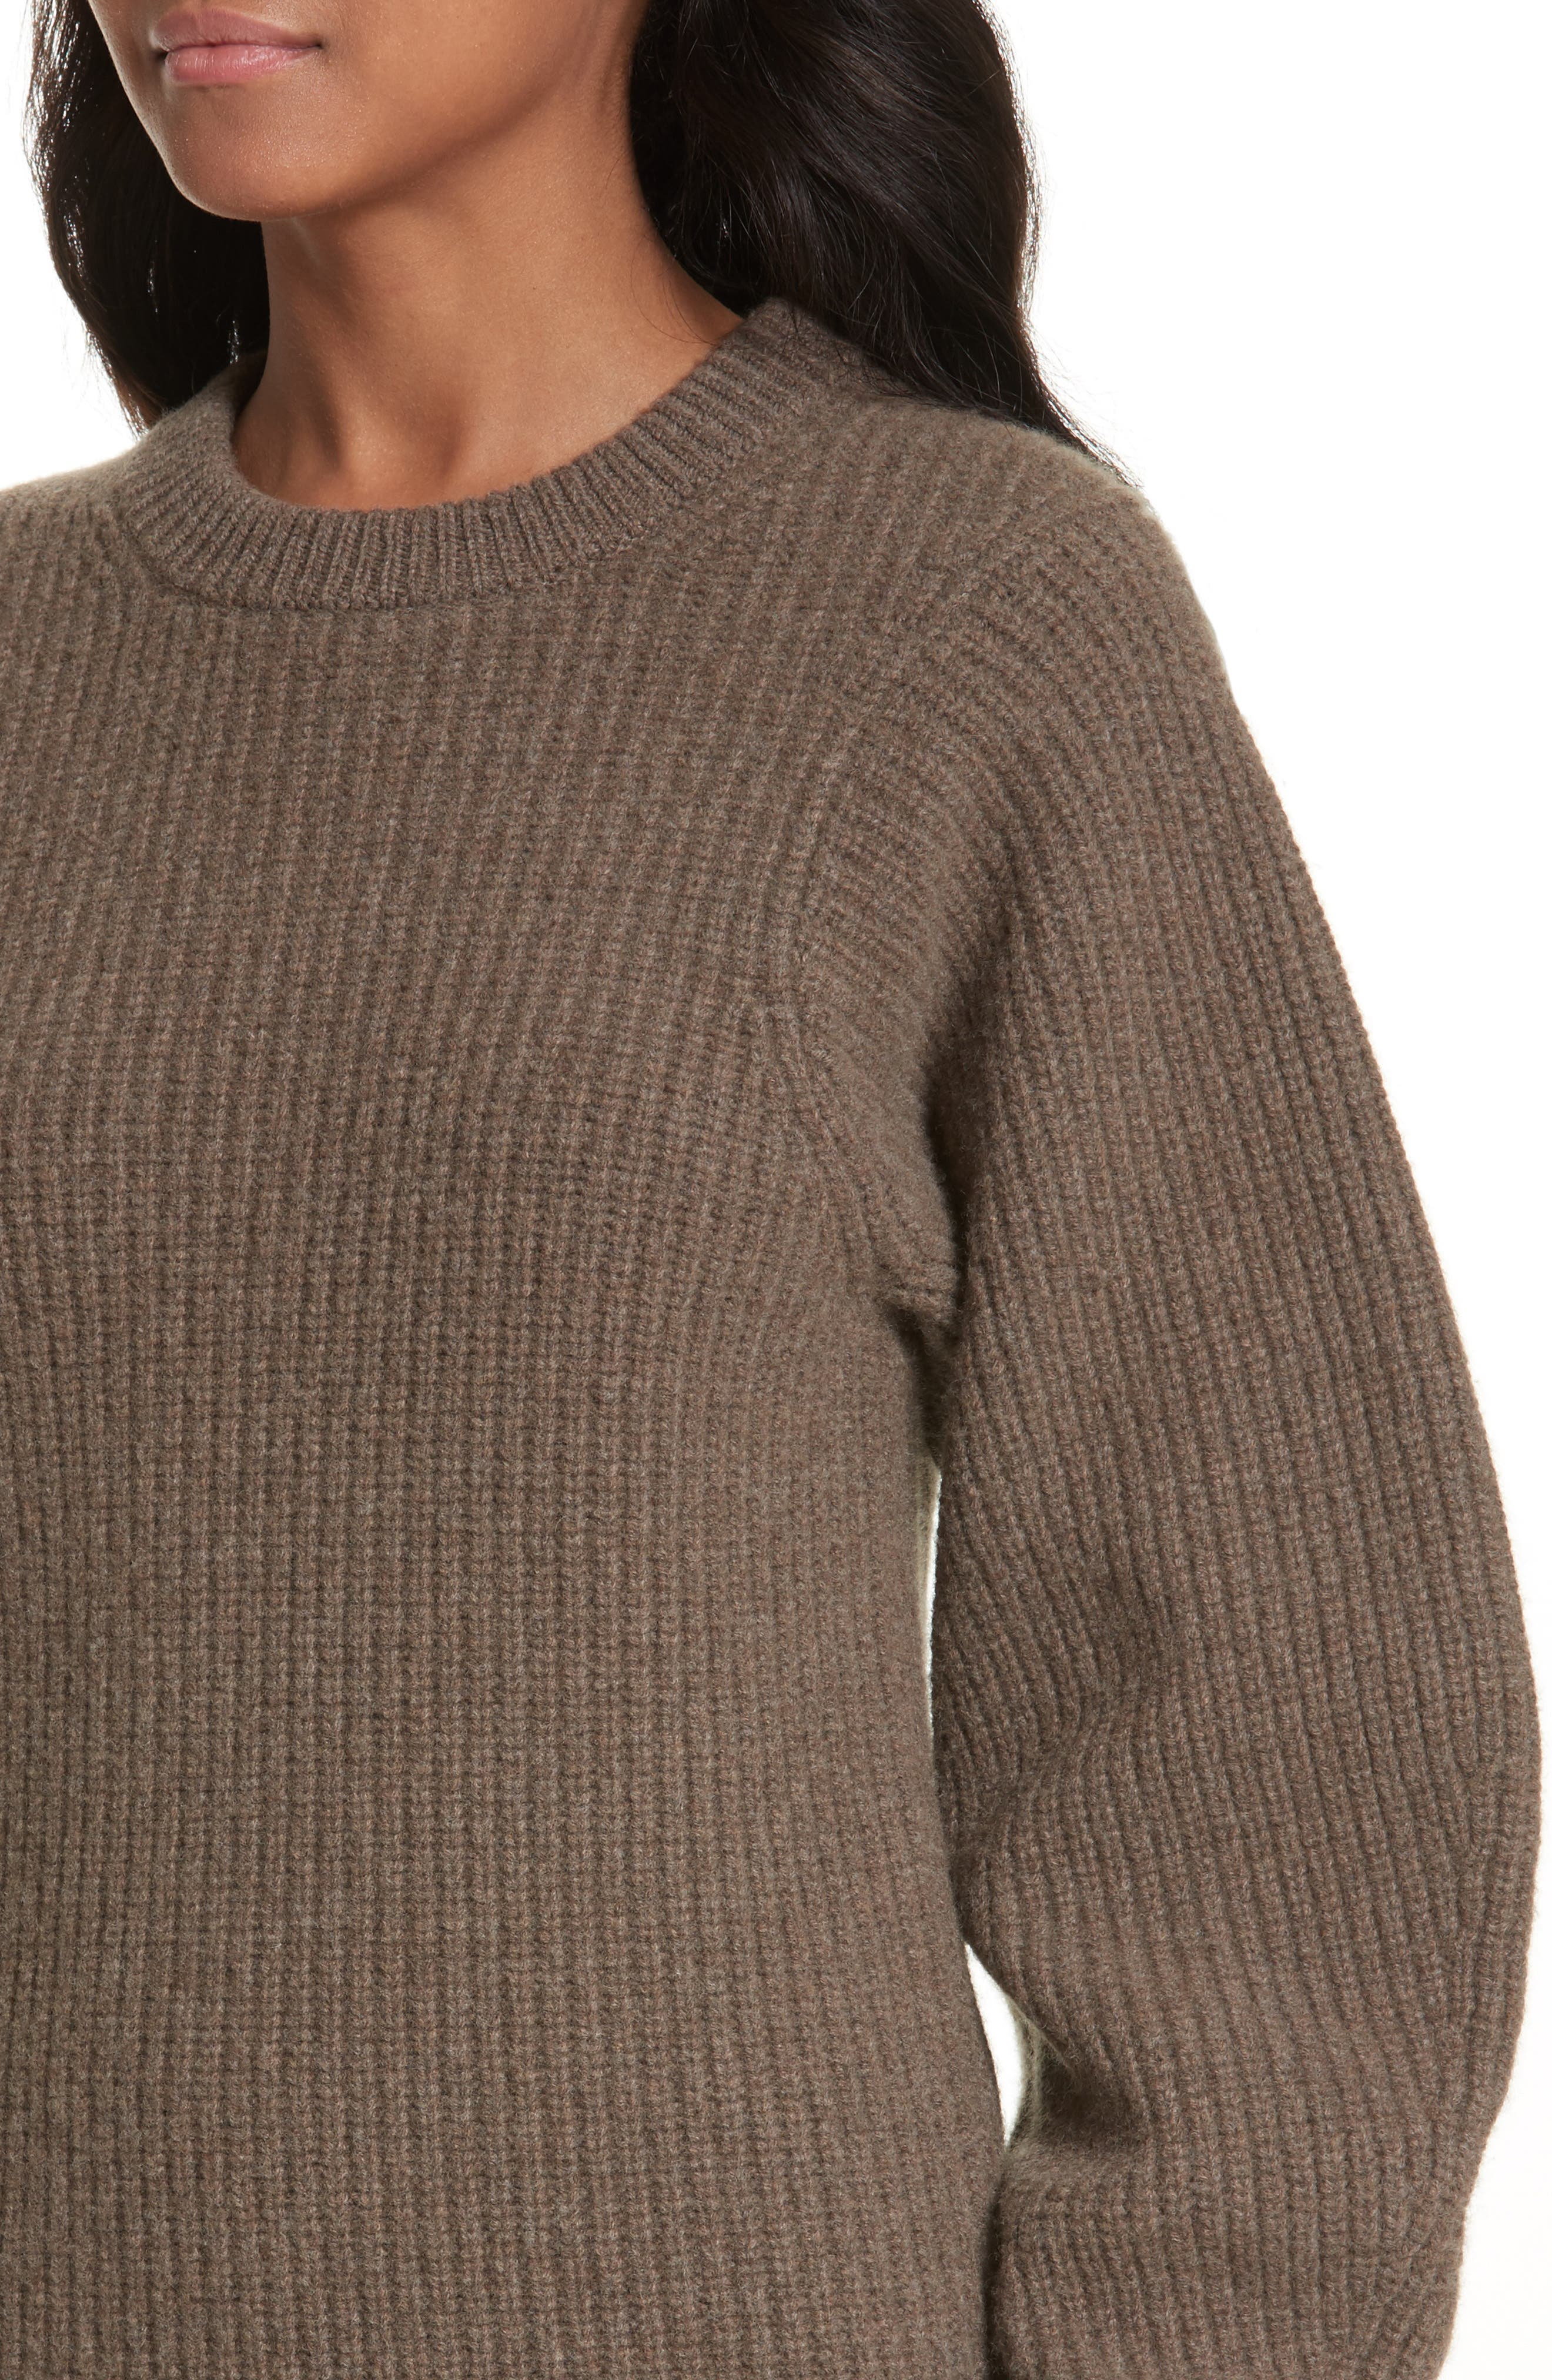 Blouson Sleeve Wool Sweater,                             Alternate thumbnail 4, color,                             346